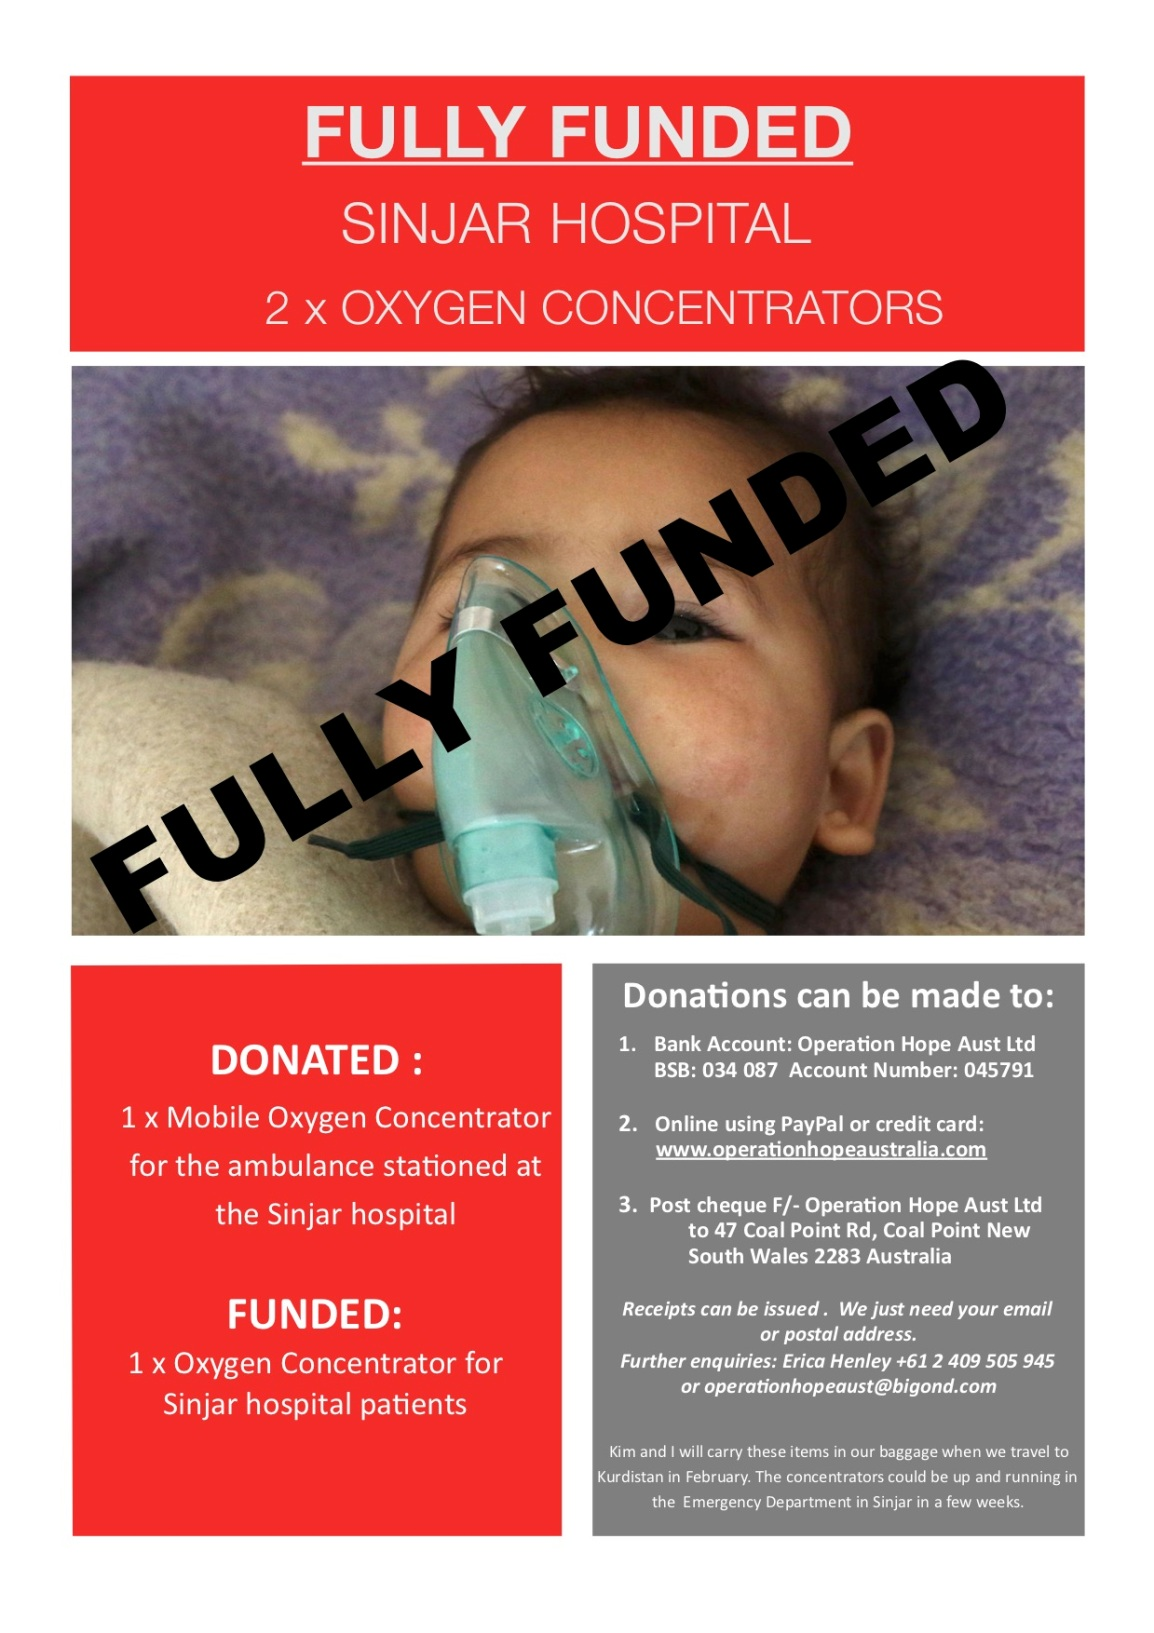 FULLY FUNDED: 2 x Oxygen Concentrators for Sinjar Hospital